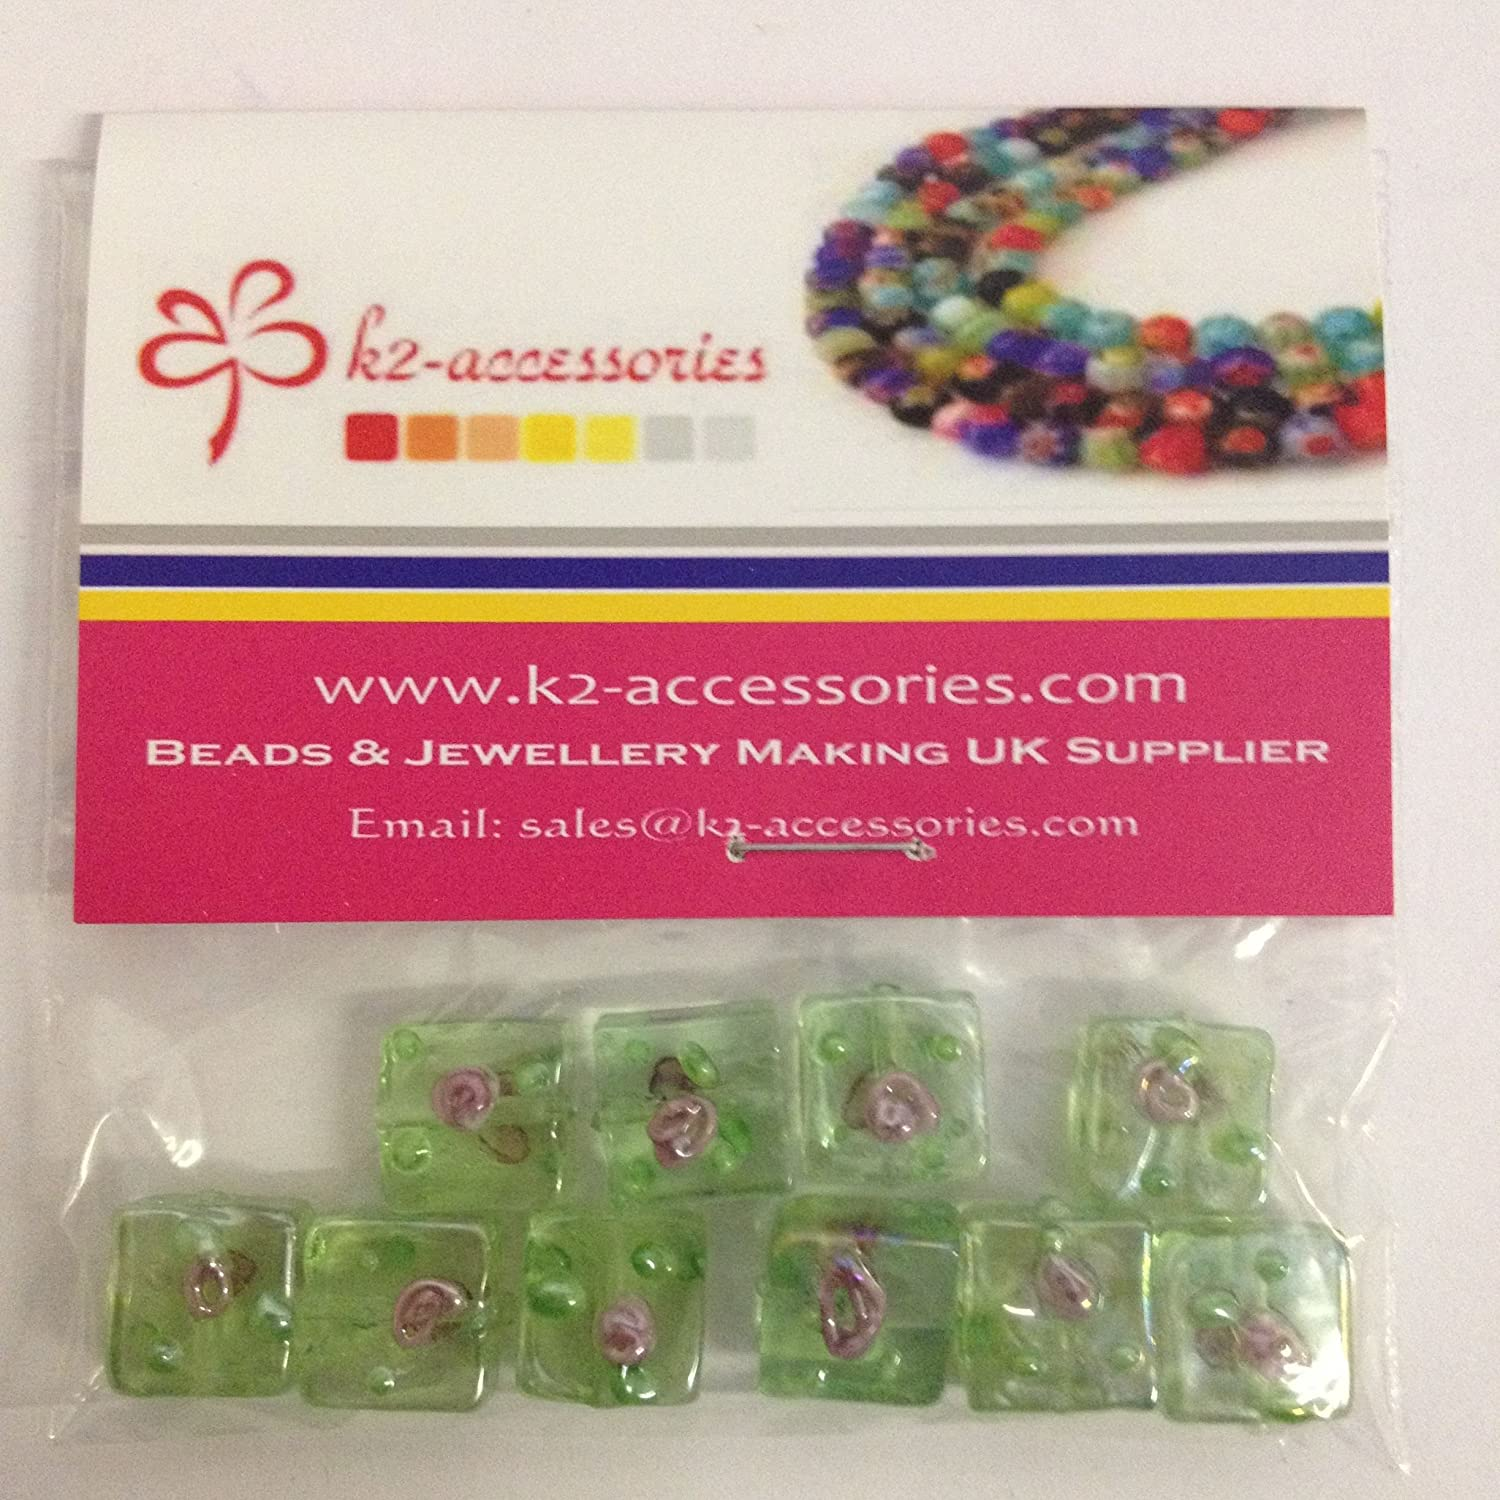 10 x Lampwork Square Glass Beads - 12x12x6mm - A4148 / 10 beads k2-accessories